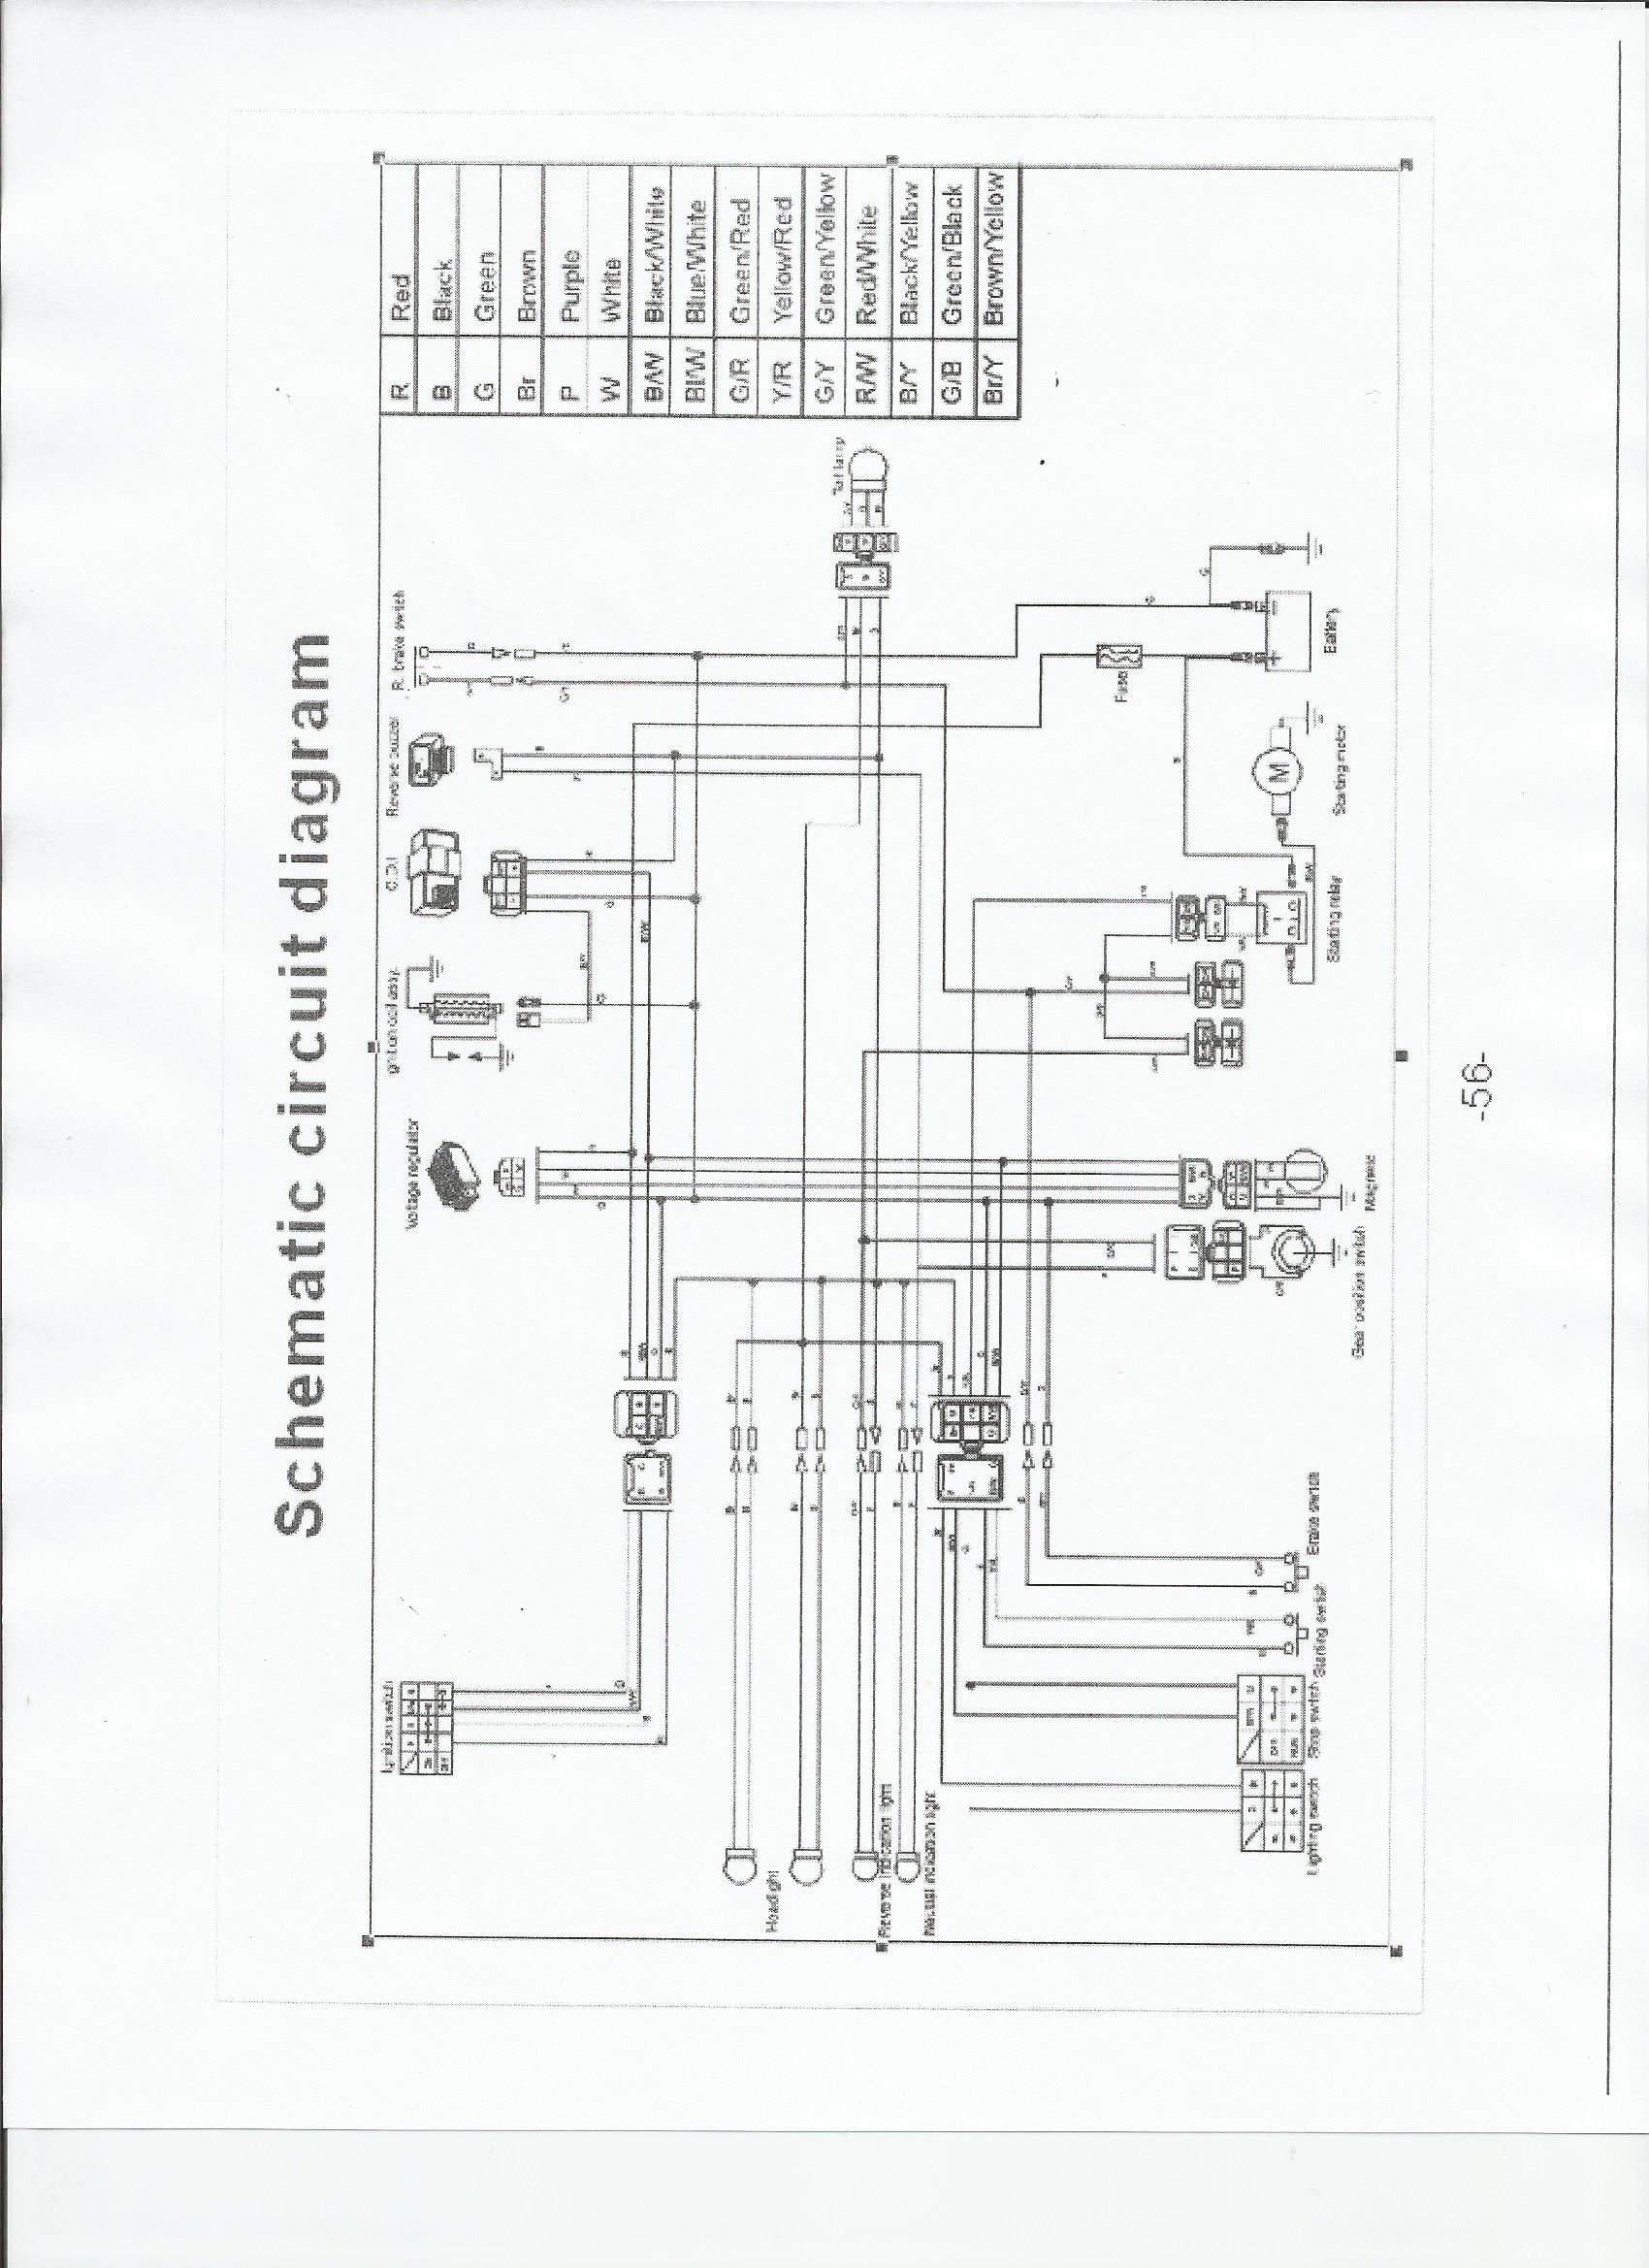 tao tao wiring schematic chinese quad wiring diagram chinese atv ignition schematic \u2022 free 150Cc Scooter Wiring Diagram at aneh.co